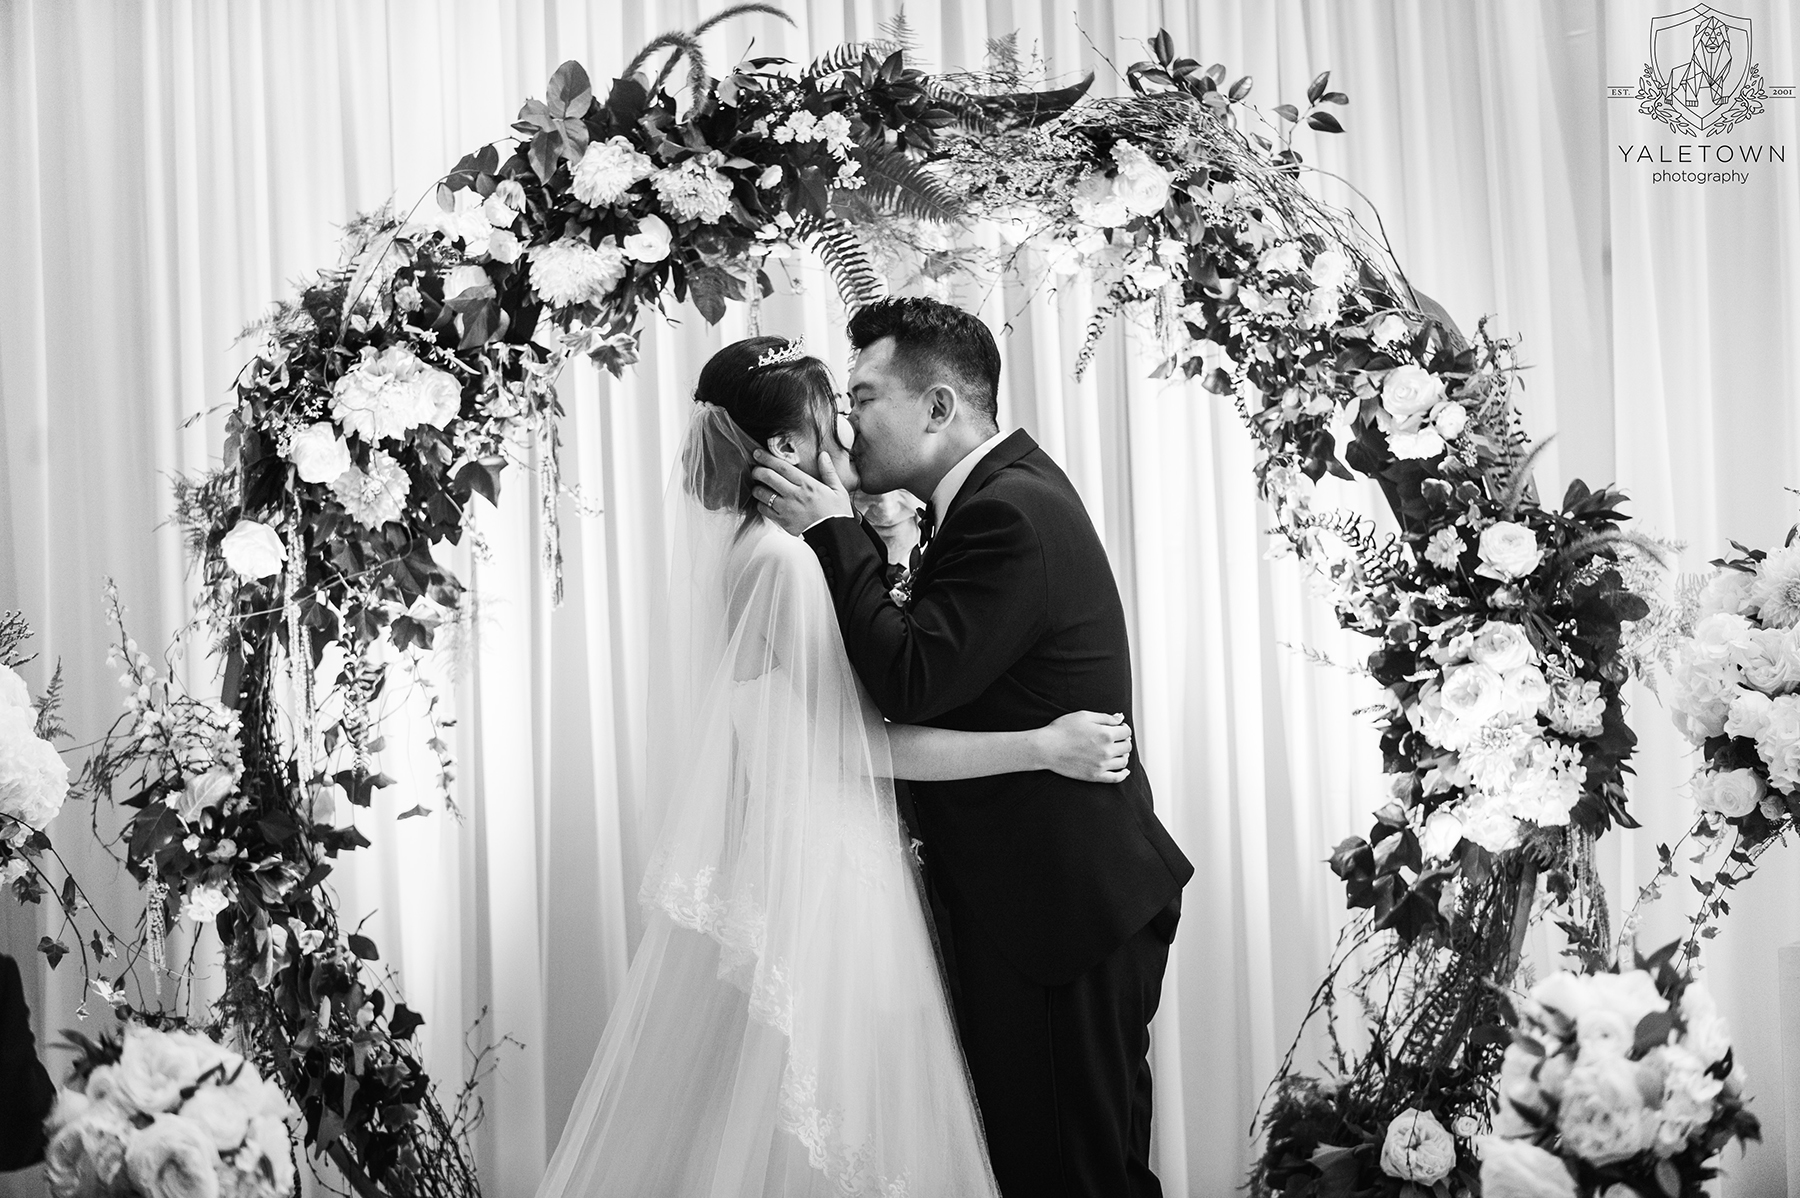 Wedding-Ceremony-Bride-Groom-First-Kiss-Rosewood-Hotel-Georgia-Vancouver-Wedding-Yaletown-Photography-photo